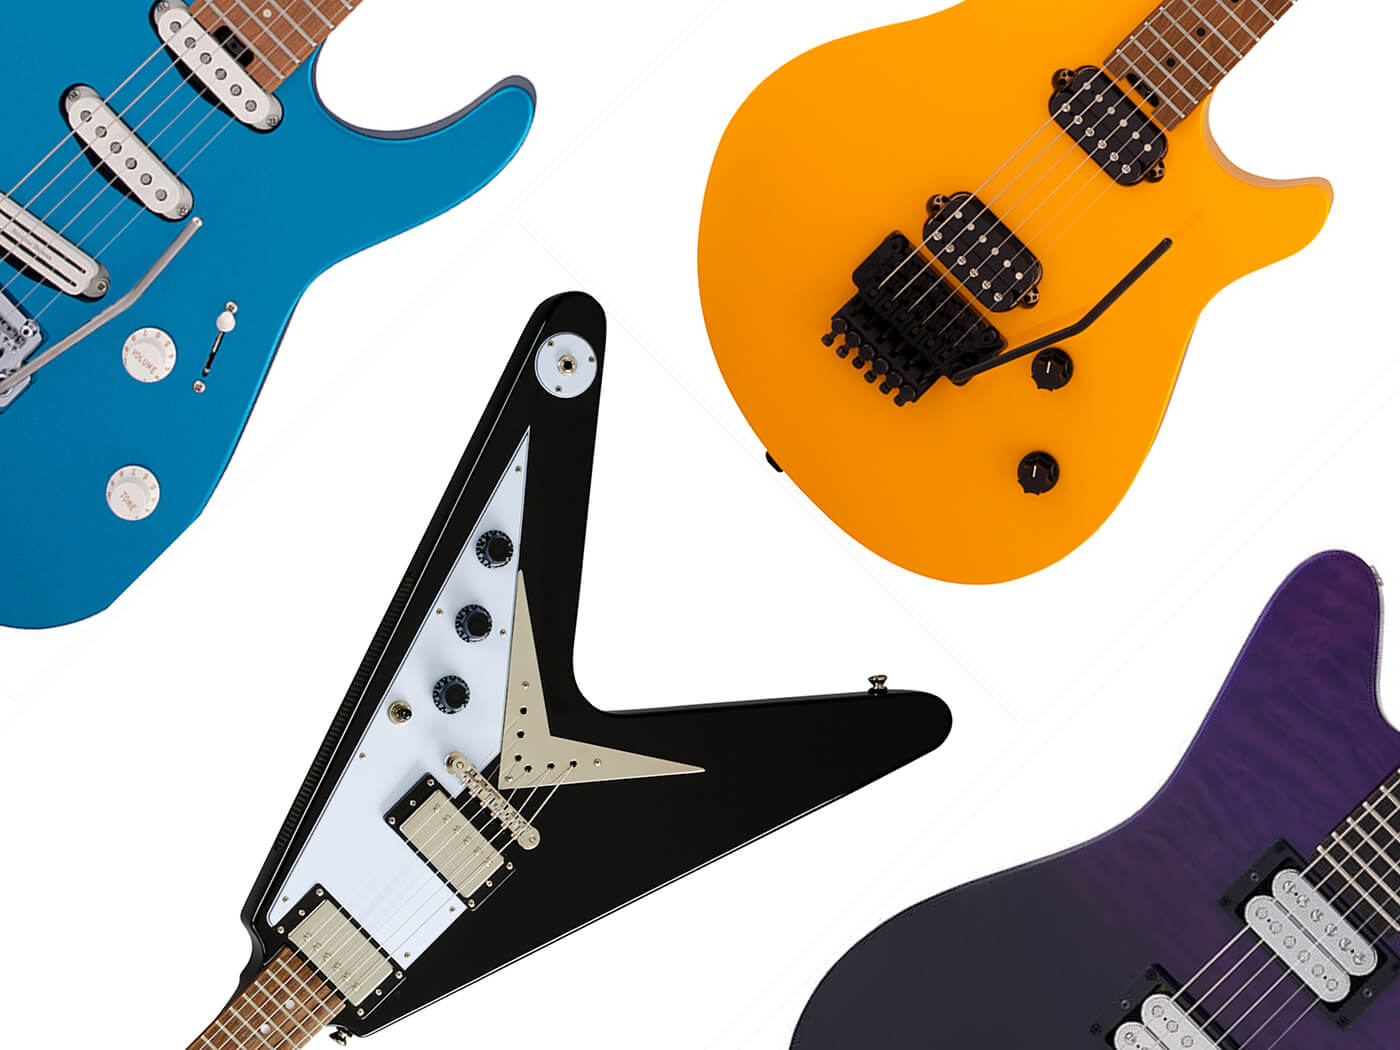 The Best Electric Guitars To Buy In 2020 15 Best Guitars For Metal Guitar Com All Things Guitar